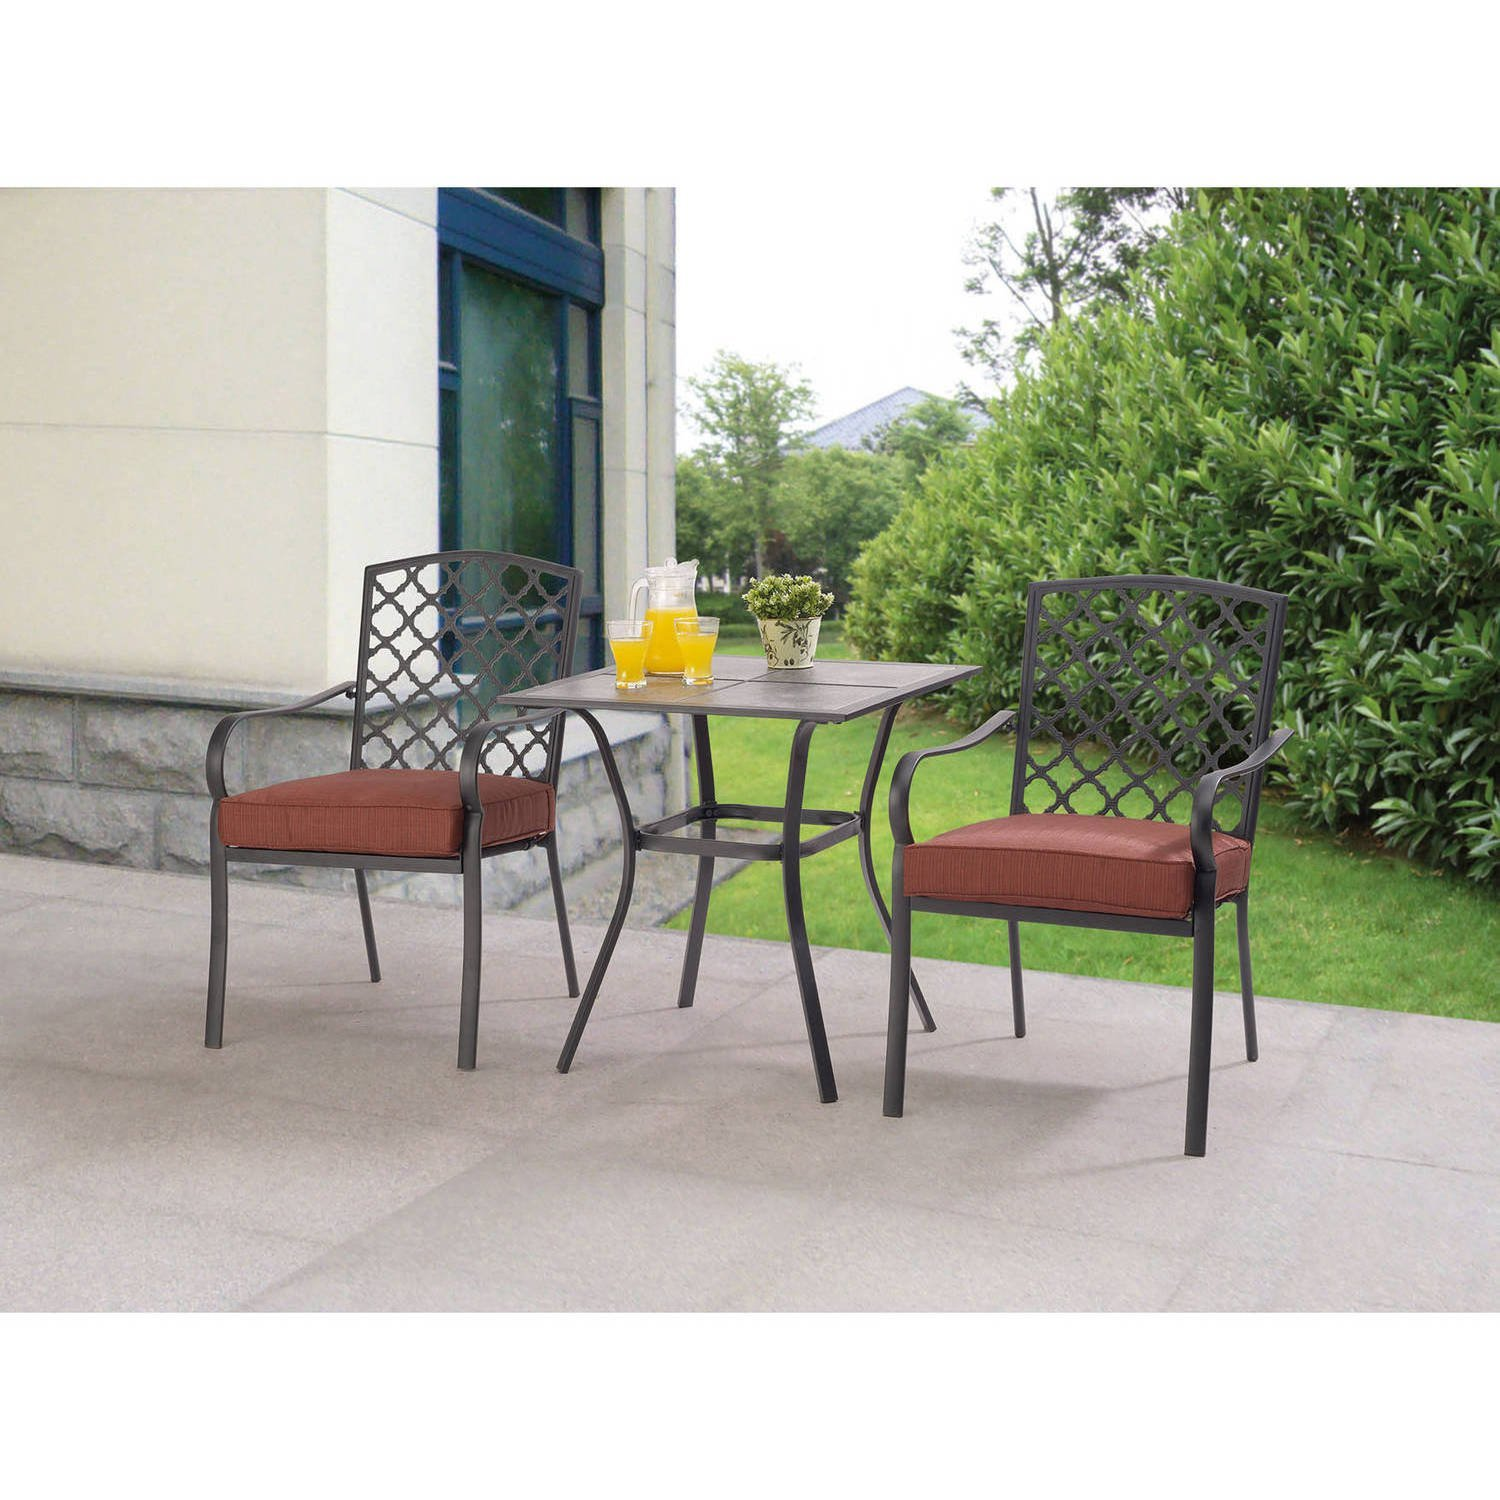 3-Piece Bistro Set, Includes Table and 2 Chairs, Durable, Powder-Coated Steel Frames, Reversible Cushions Come With Easy on and off Clip, 100% Outdoor Printed Fabric, Easy to Assemble